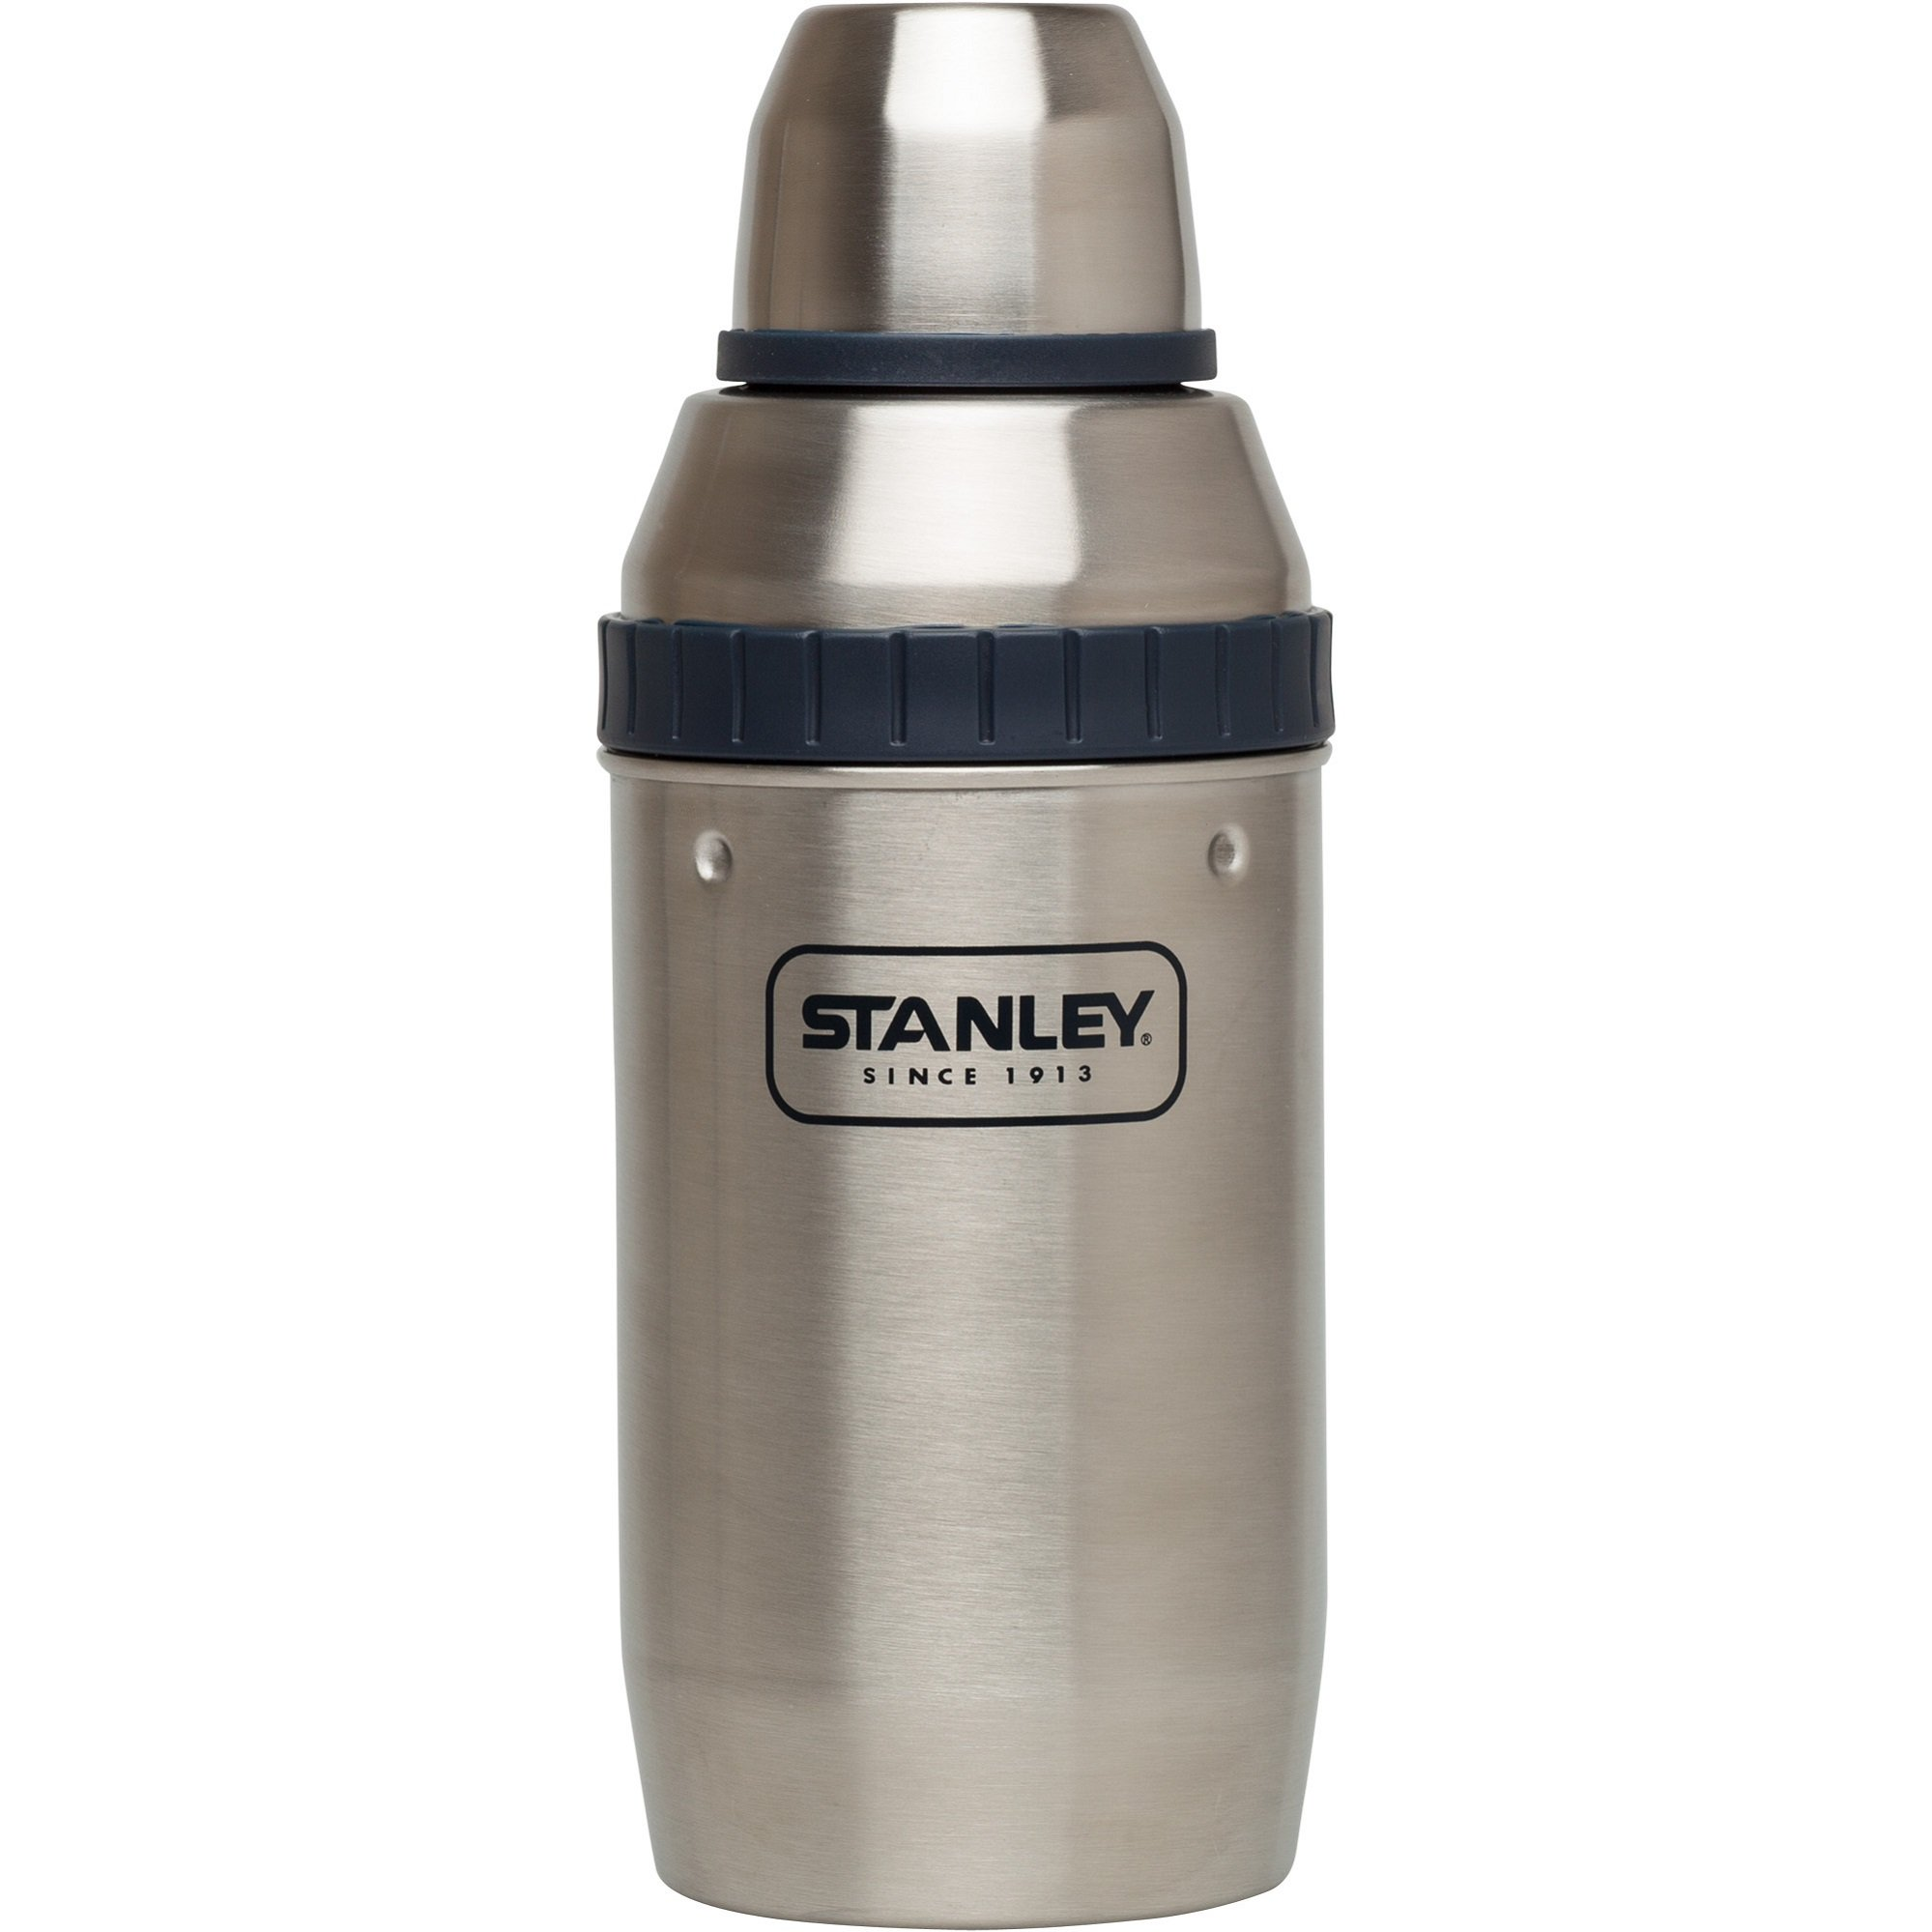 Stanley Adventure Stainless Steel Insulated Happy Hour Shaker Set BPA-Free 20 Ounce and 7 Ounce Cups (x2) by Stanley